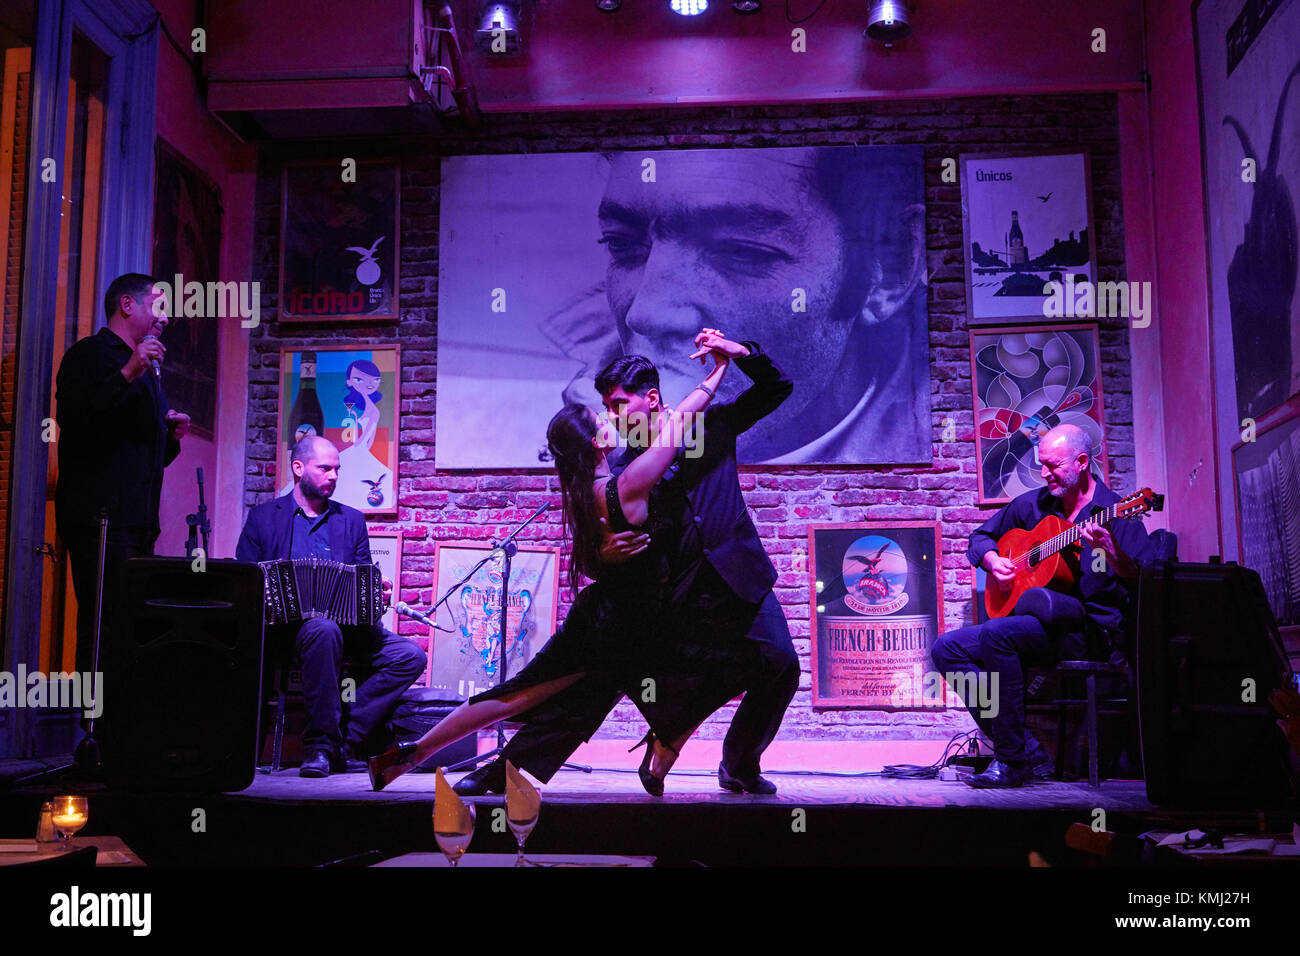 Tango dancers and band, Todo Mundo Bar, Plaza Dorrego, San Telmo, Buenos Aires, Argentina, South America - Stock Image